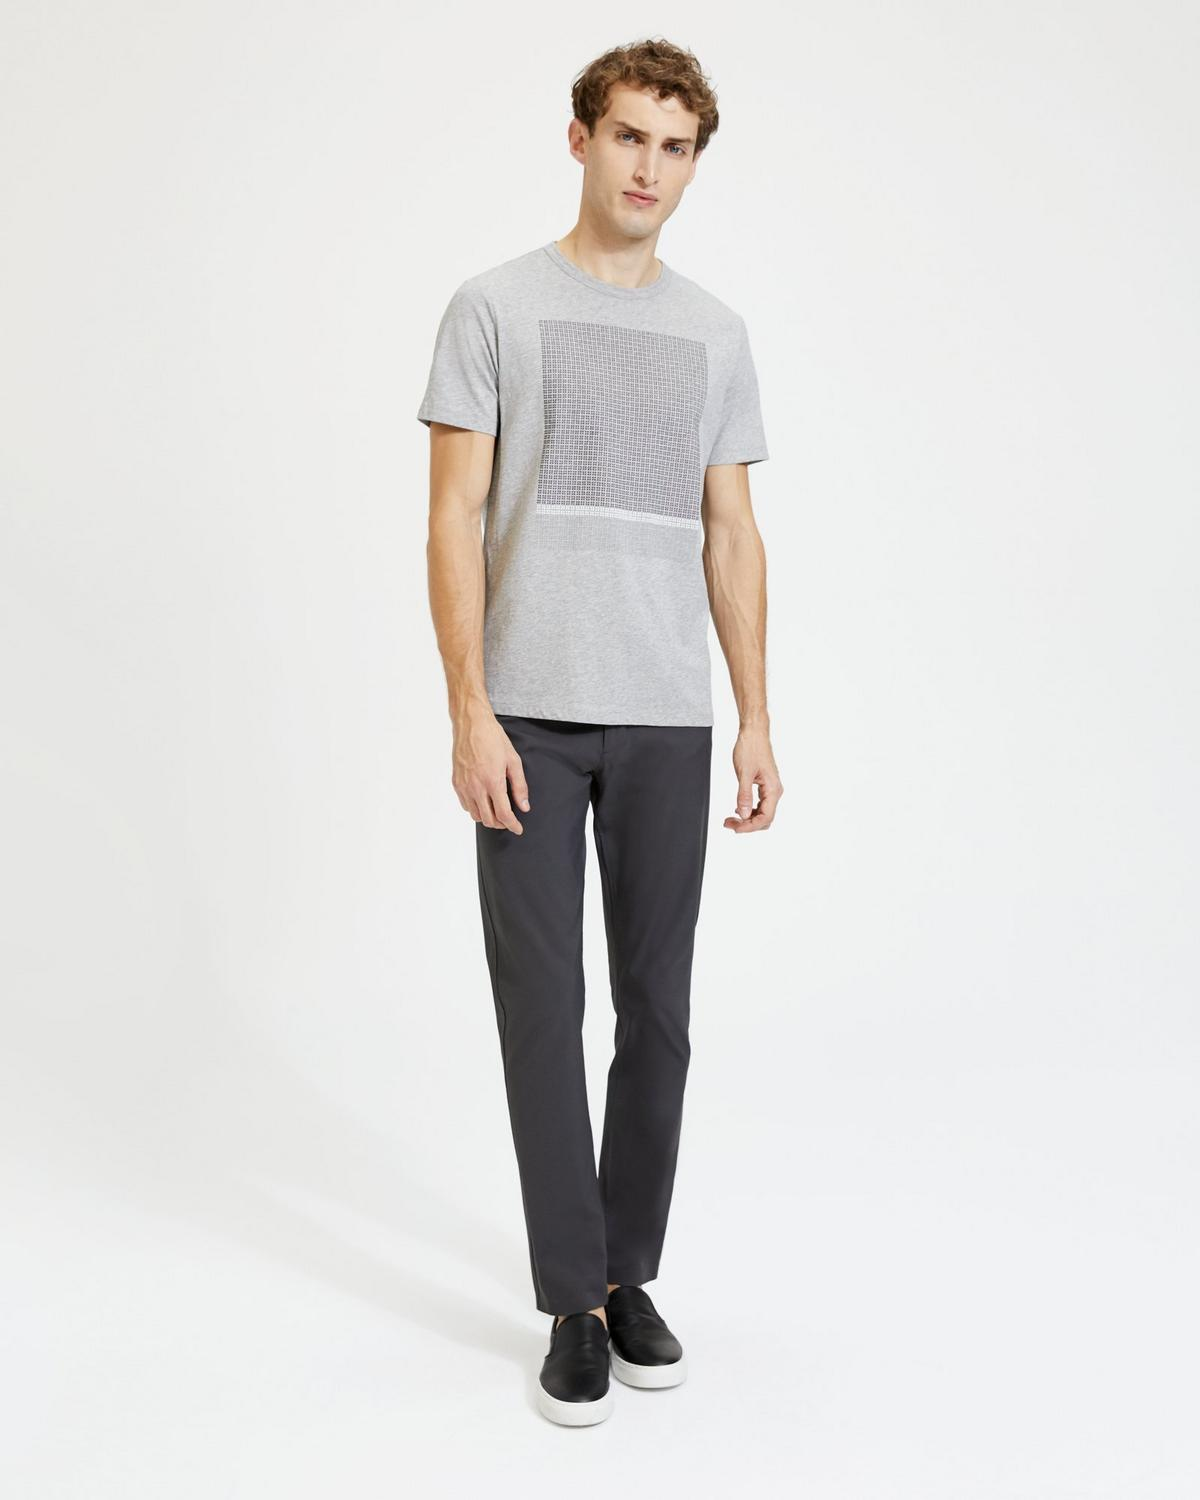 Colorfield Tee